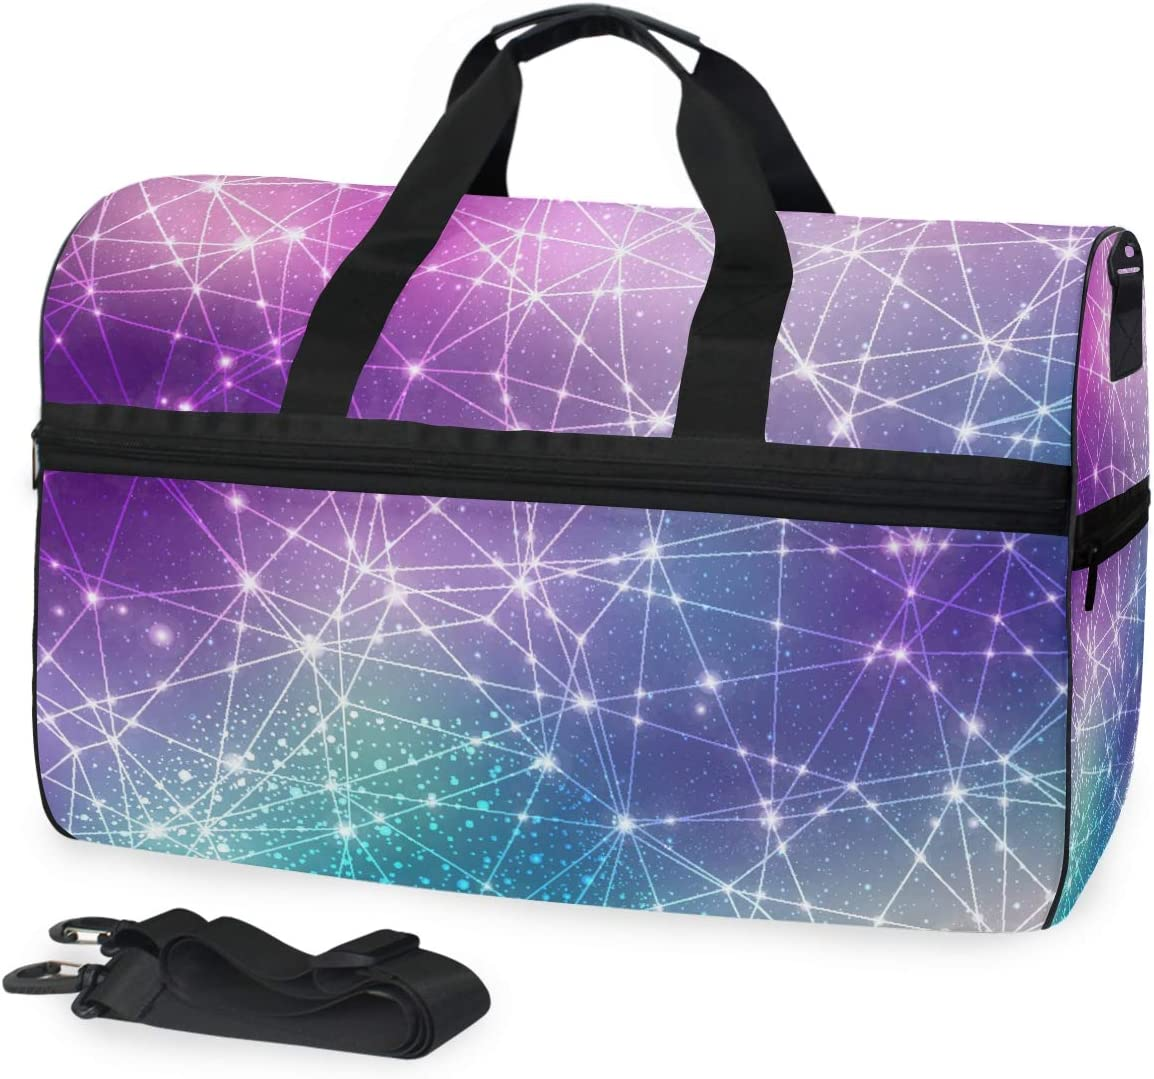 ALAZA Magic Space Cosmic Constellation with Stars Sports Gym Duffel Bag Travel Luggage Handbag Shoulder Bag with Shoes Compartment for Men Women